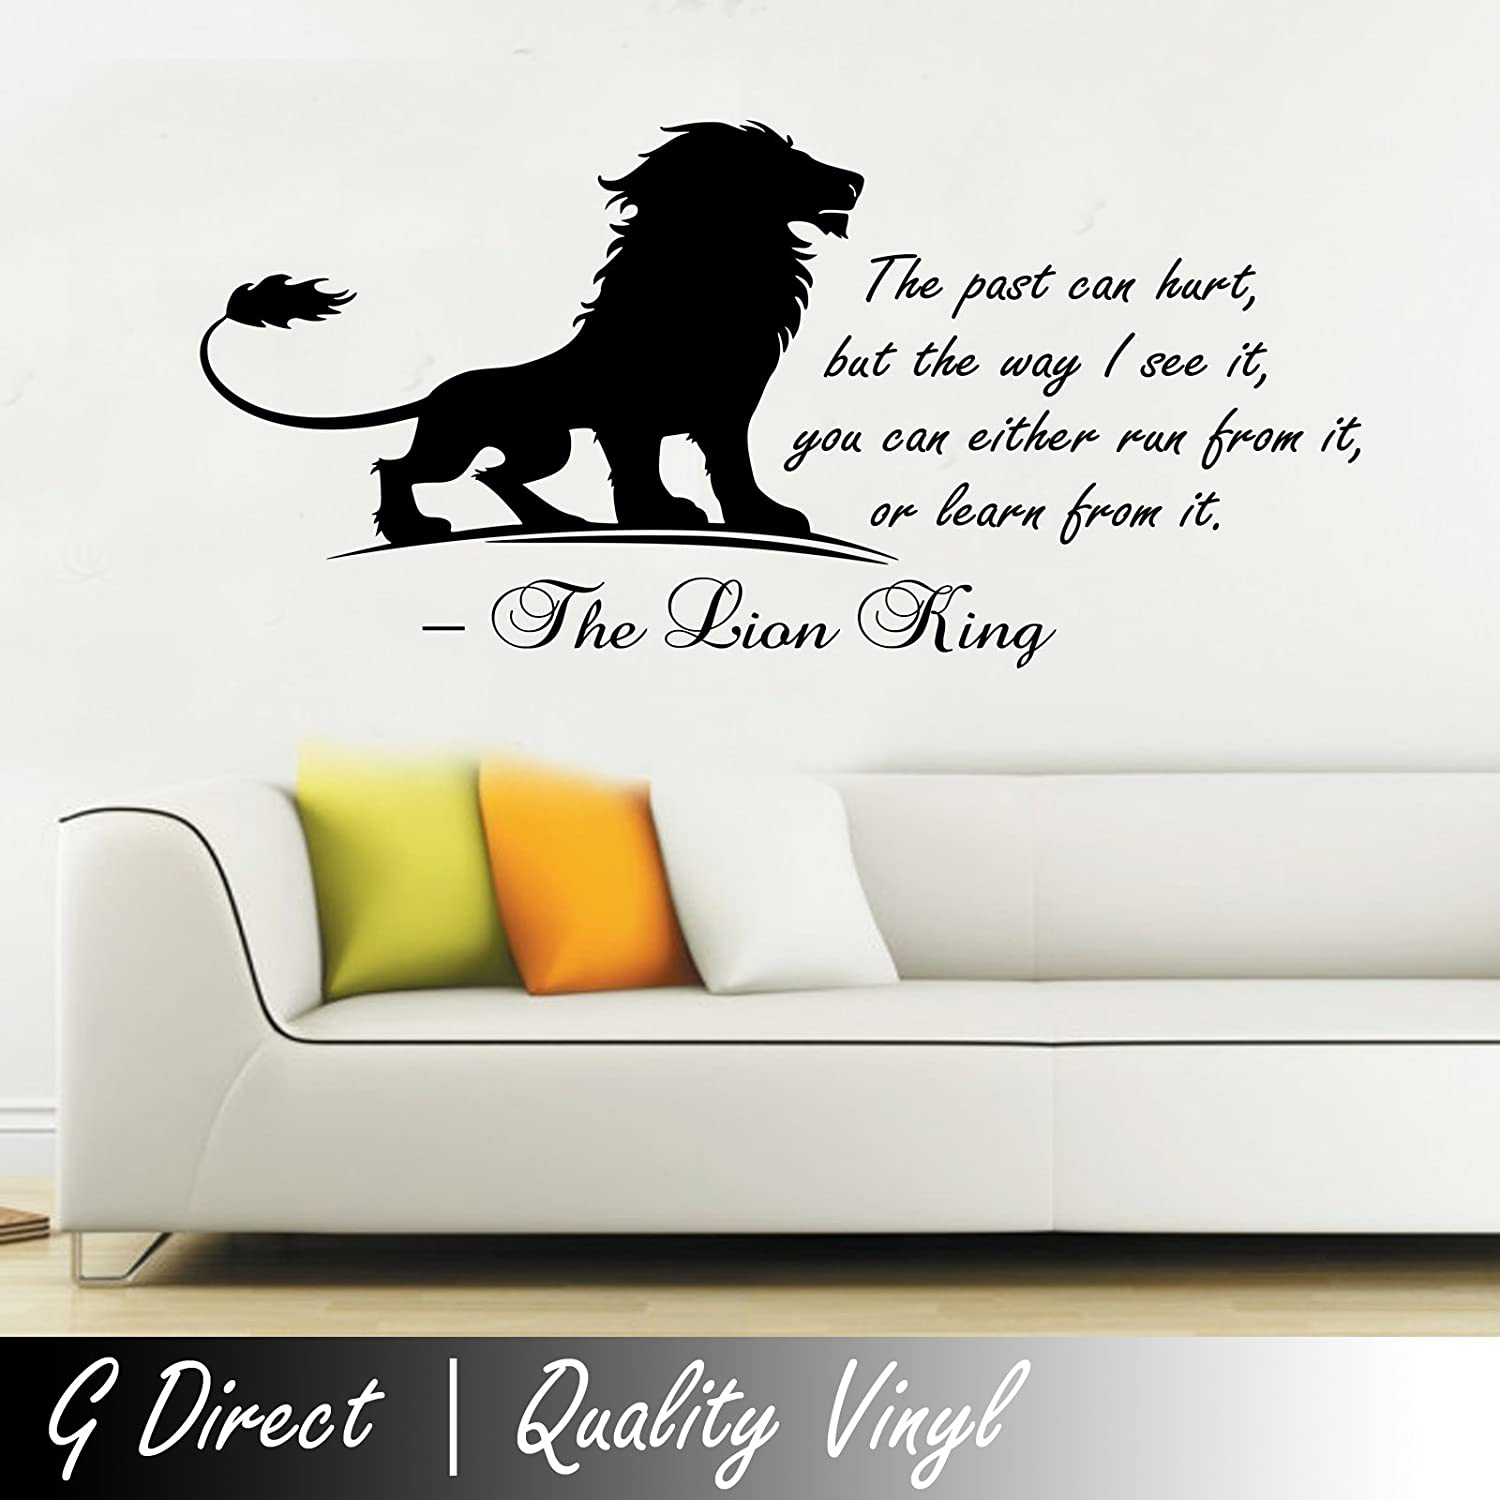 The lion king inspirational wall sticker quote kids bedroom the lion king inspirational wall sticker quote kids bedroom playroom home mural 100x55 amazon kitchen home amipublicfo Choice Image